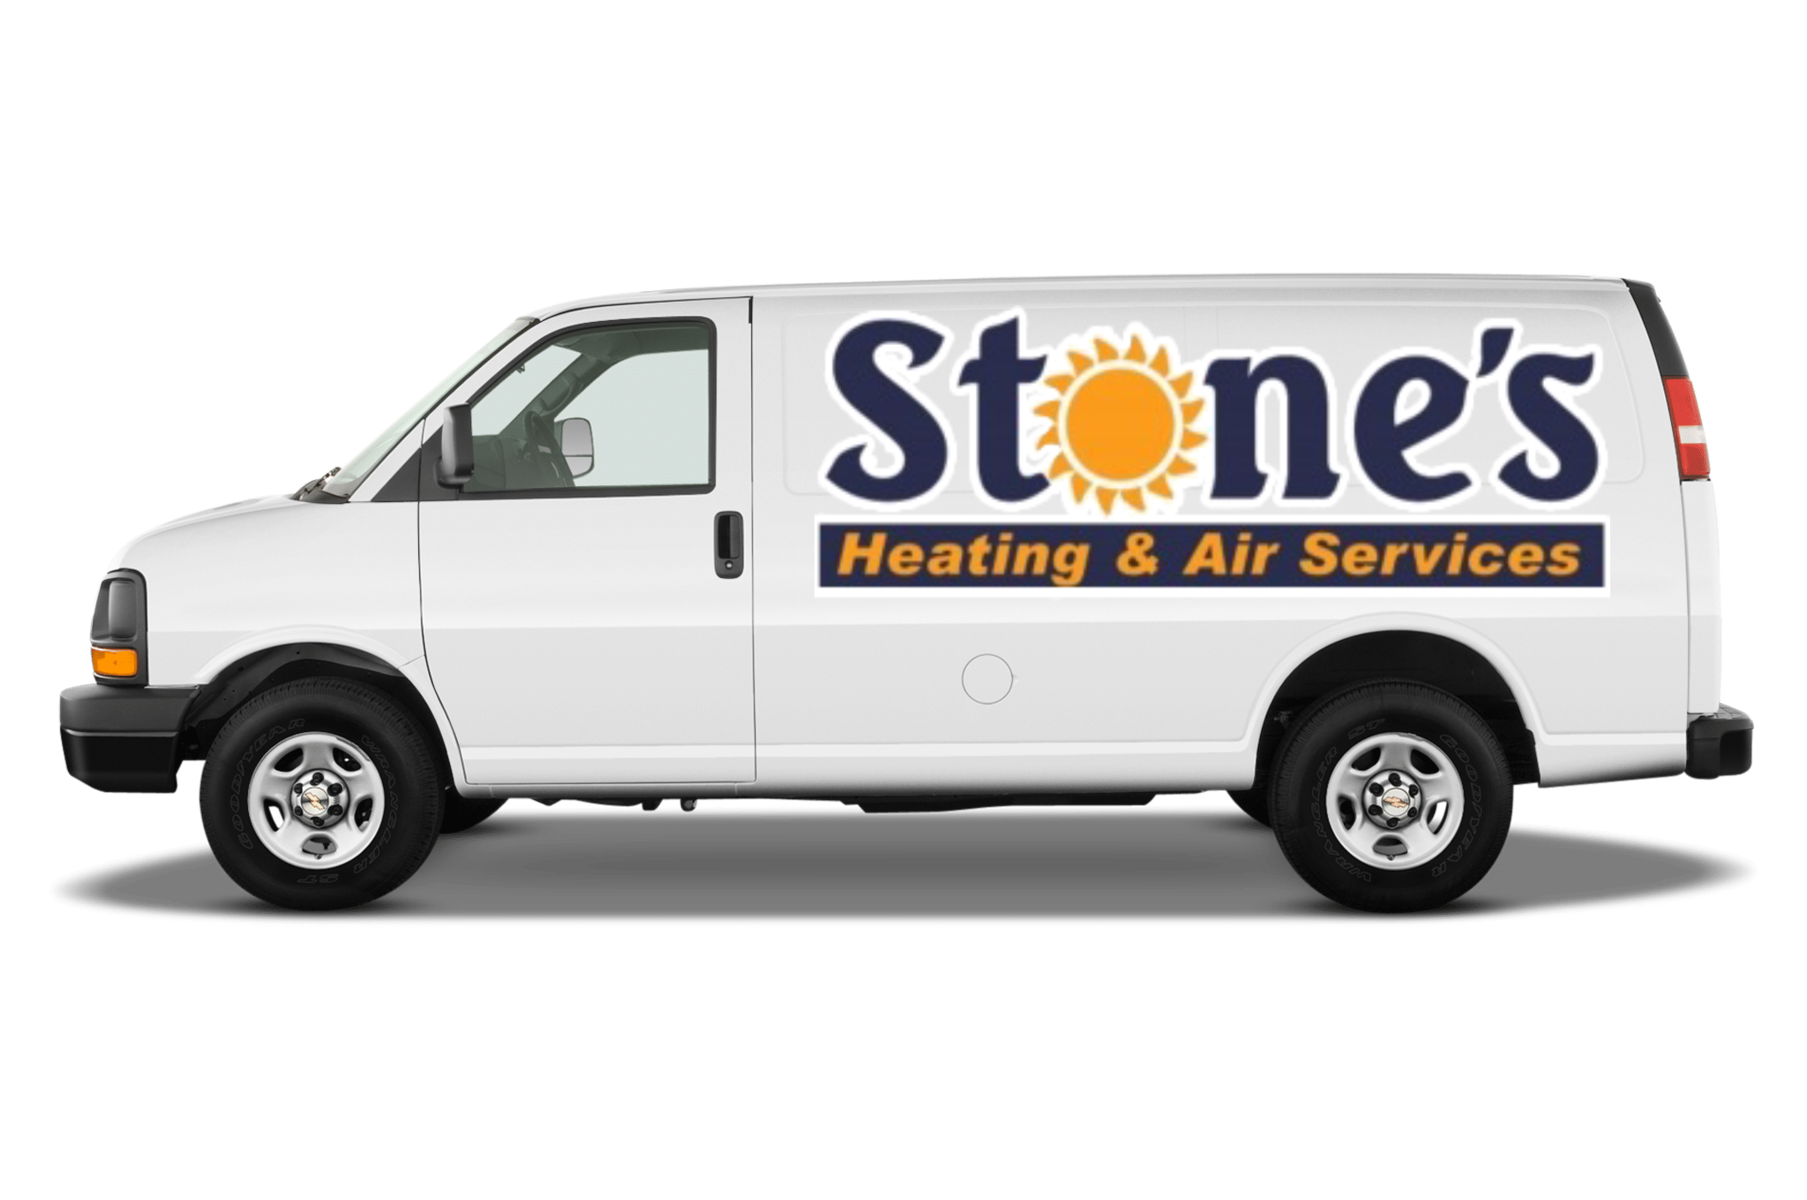 Air Conditioner Repair Valdosta Ga by Stone's Heating & Air Services